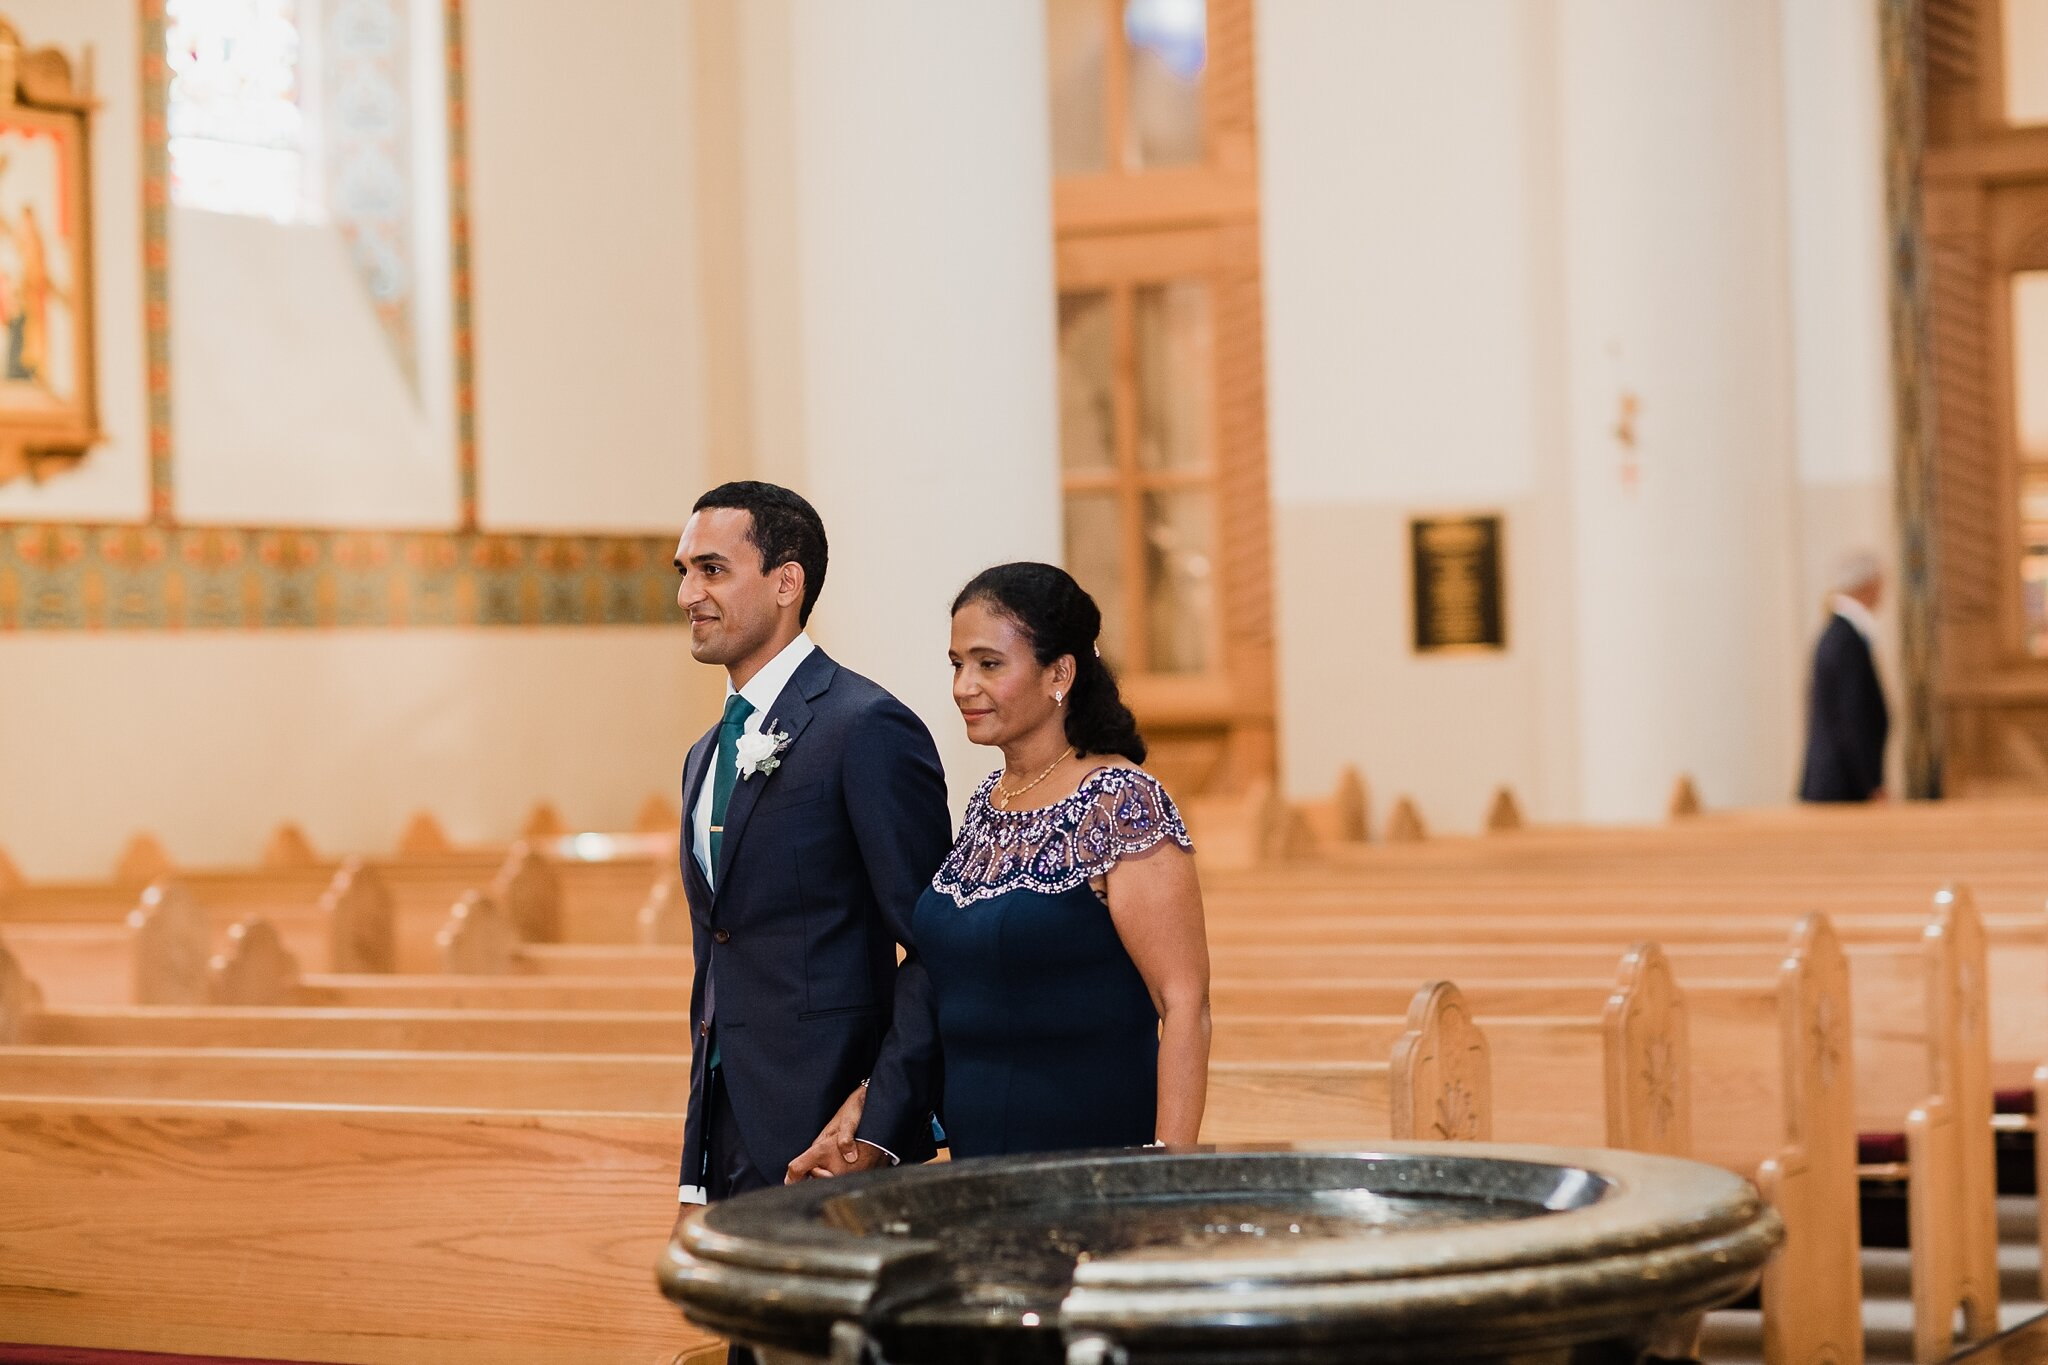 Alicia+lucia+photography+-+albuquerque+wedding+photographer+-+santa+fe+wedding+photography+-+new+mexico+wedding+photographer+-+new+mexico+wedding+-+hindu+wedding+-+catholic+wedding+-+multicultural+wedding+-+santa+fe+wedding_0023.jpg